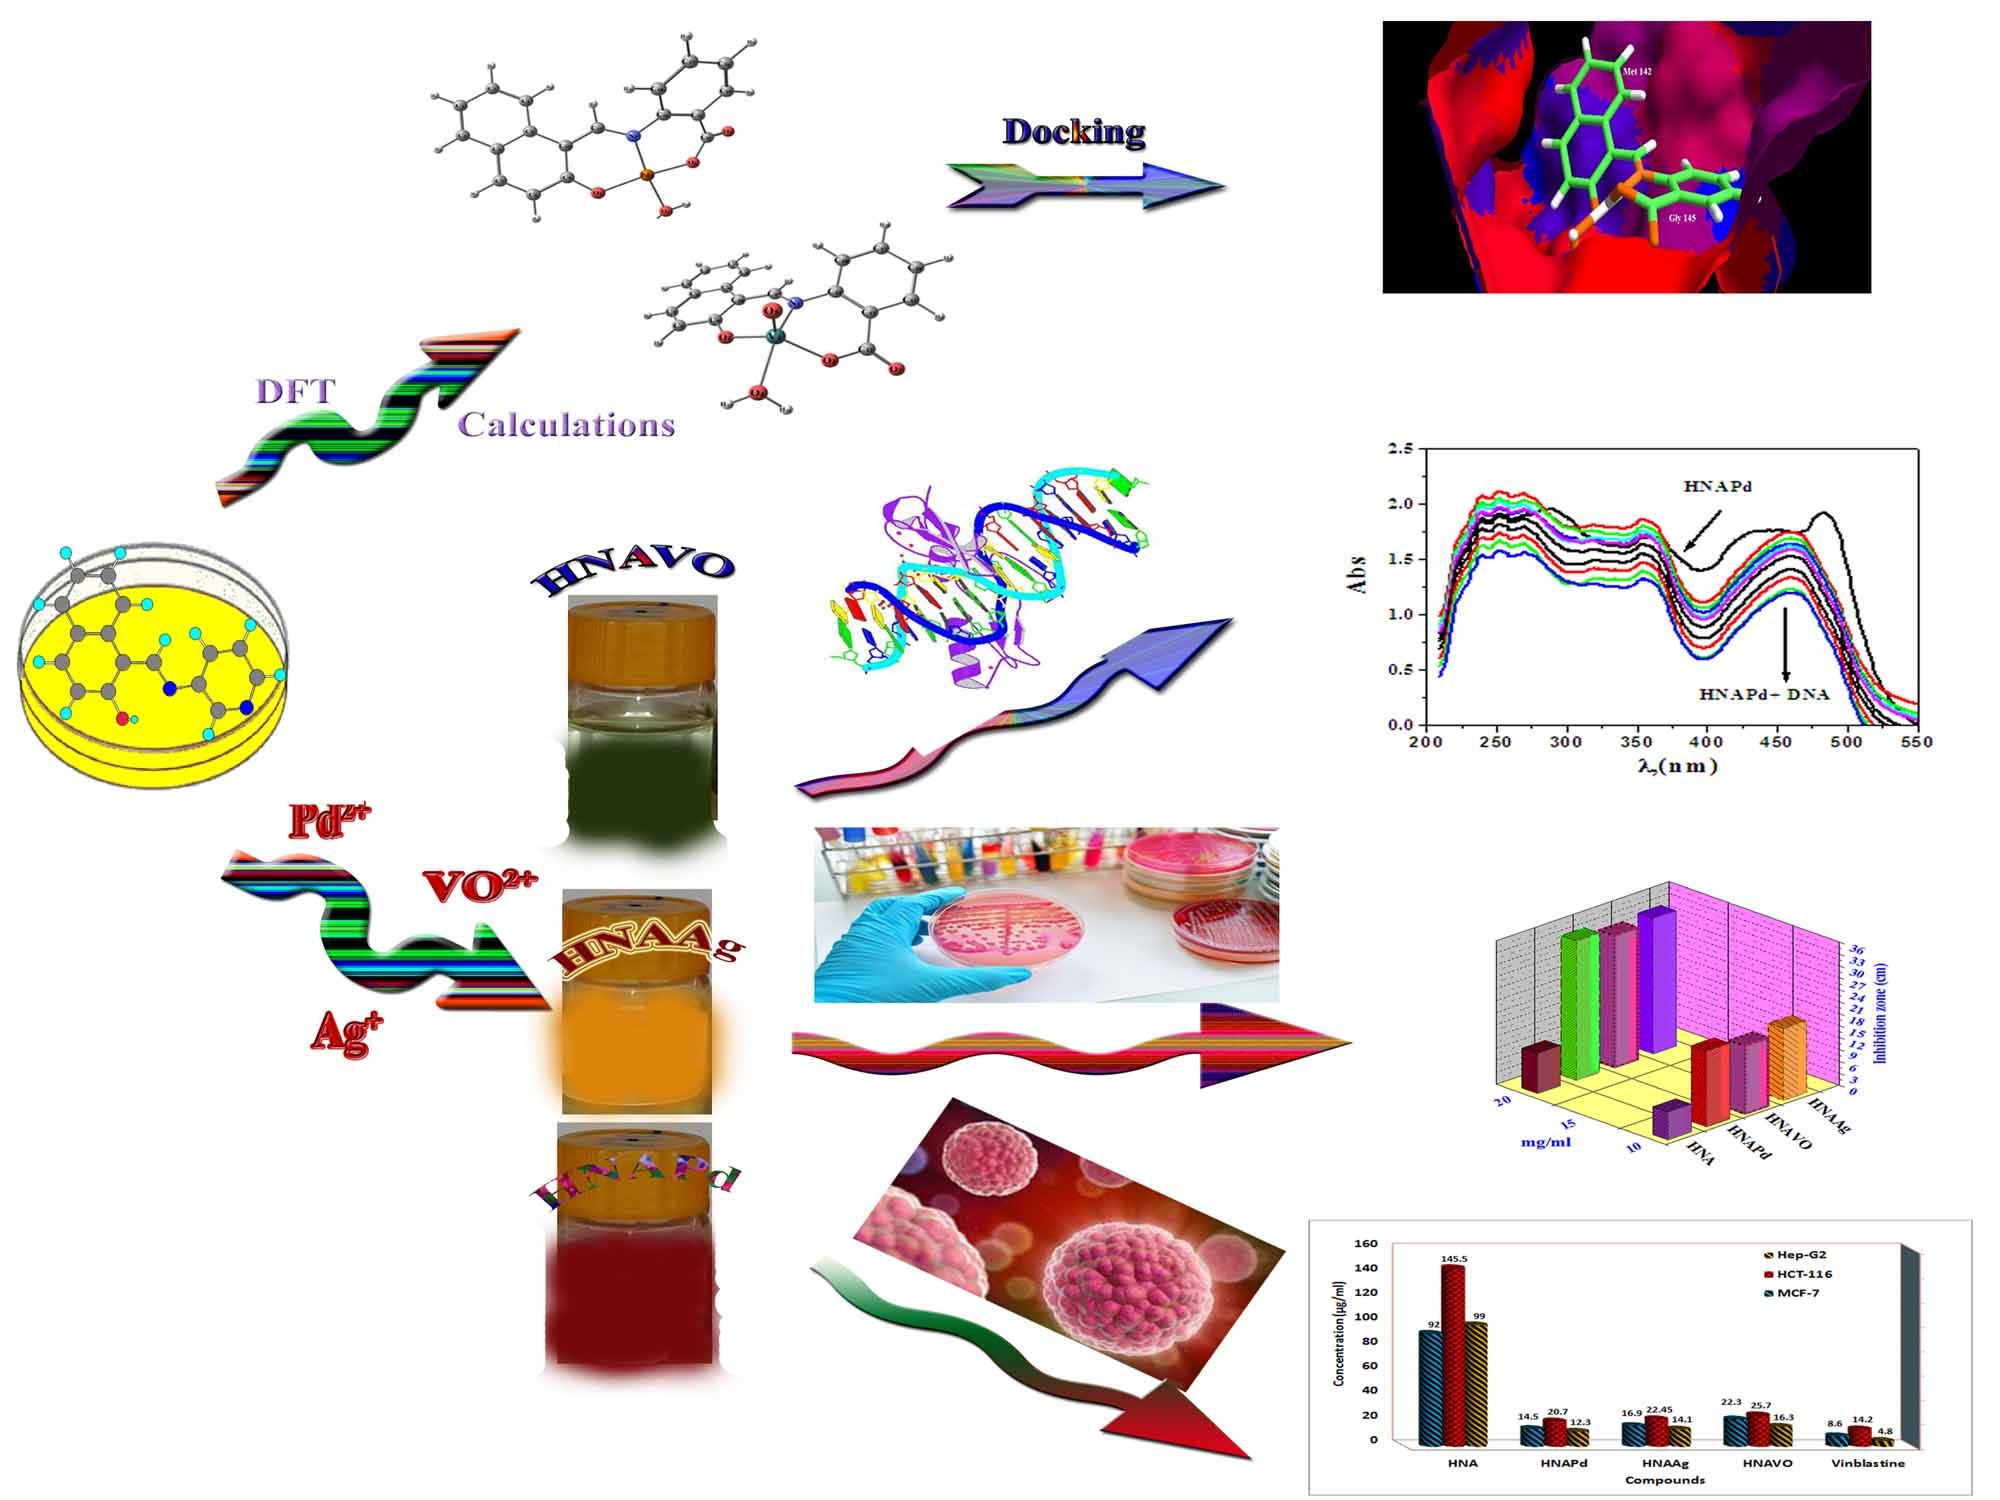 Some New  Ag(I),  VO(II)  and Pd(II) Chelates encompassing Tri-dentate Imine Ligand: Design, synthesis, Structure elucidation and DFT calculations for DNA Interaction, Antimicrobial, Anticancer Activities and Molecular Docking Studies